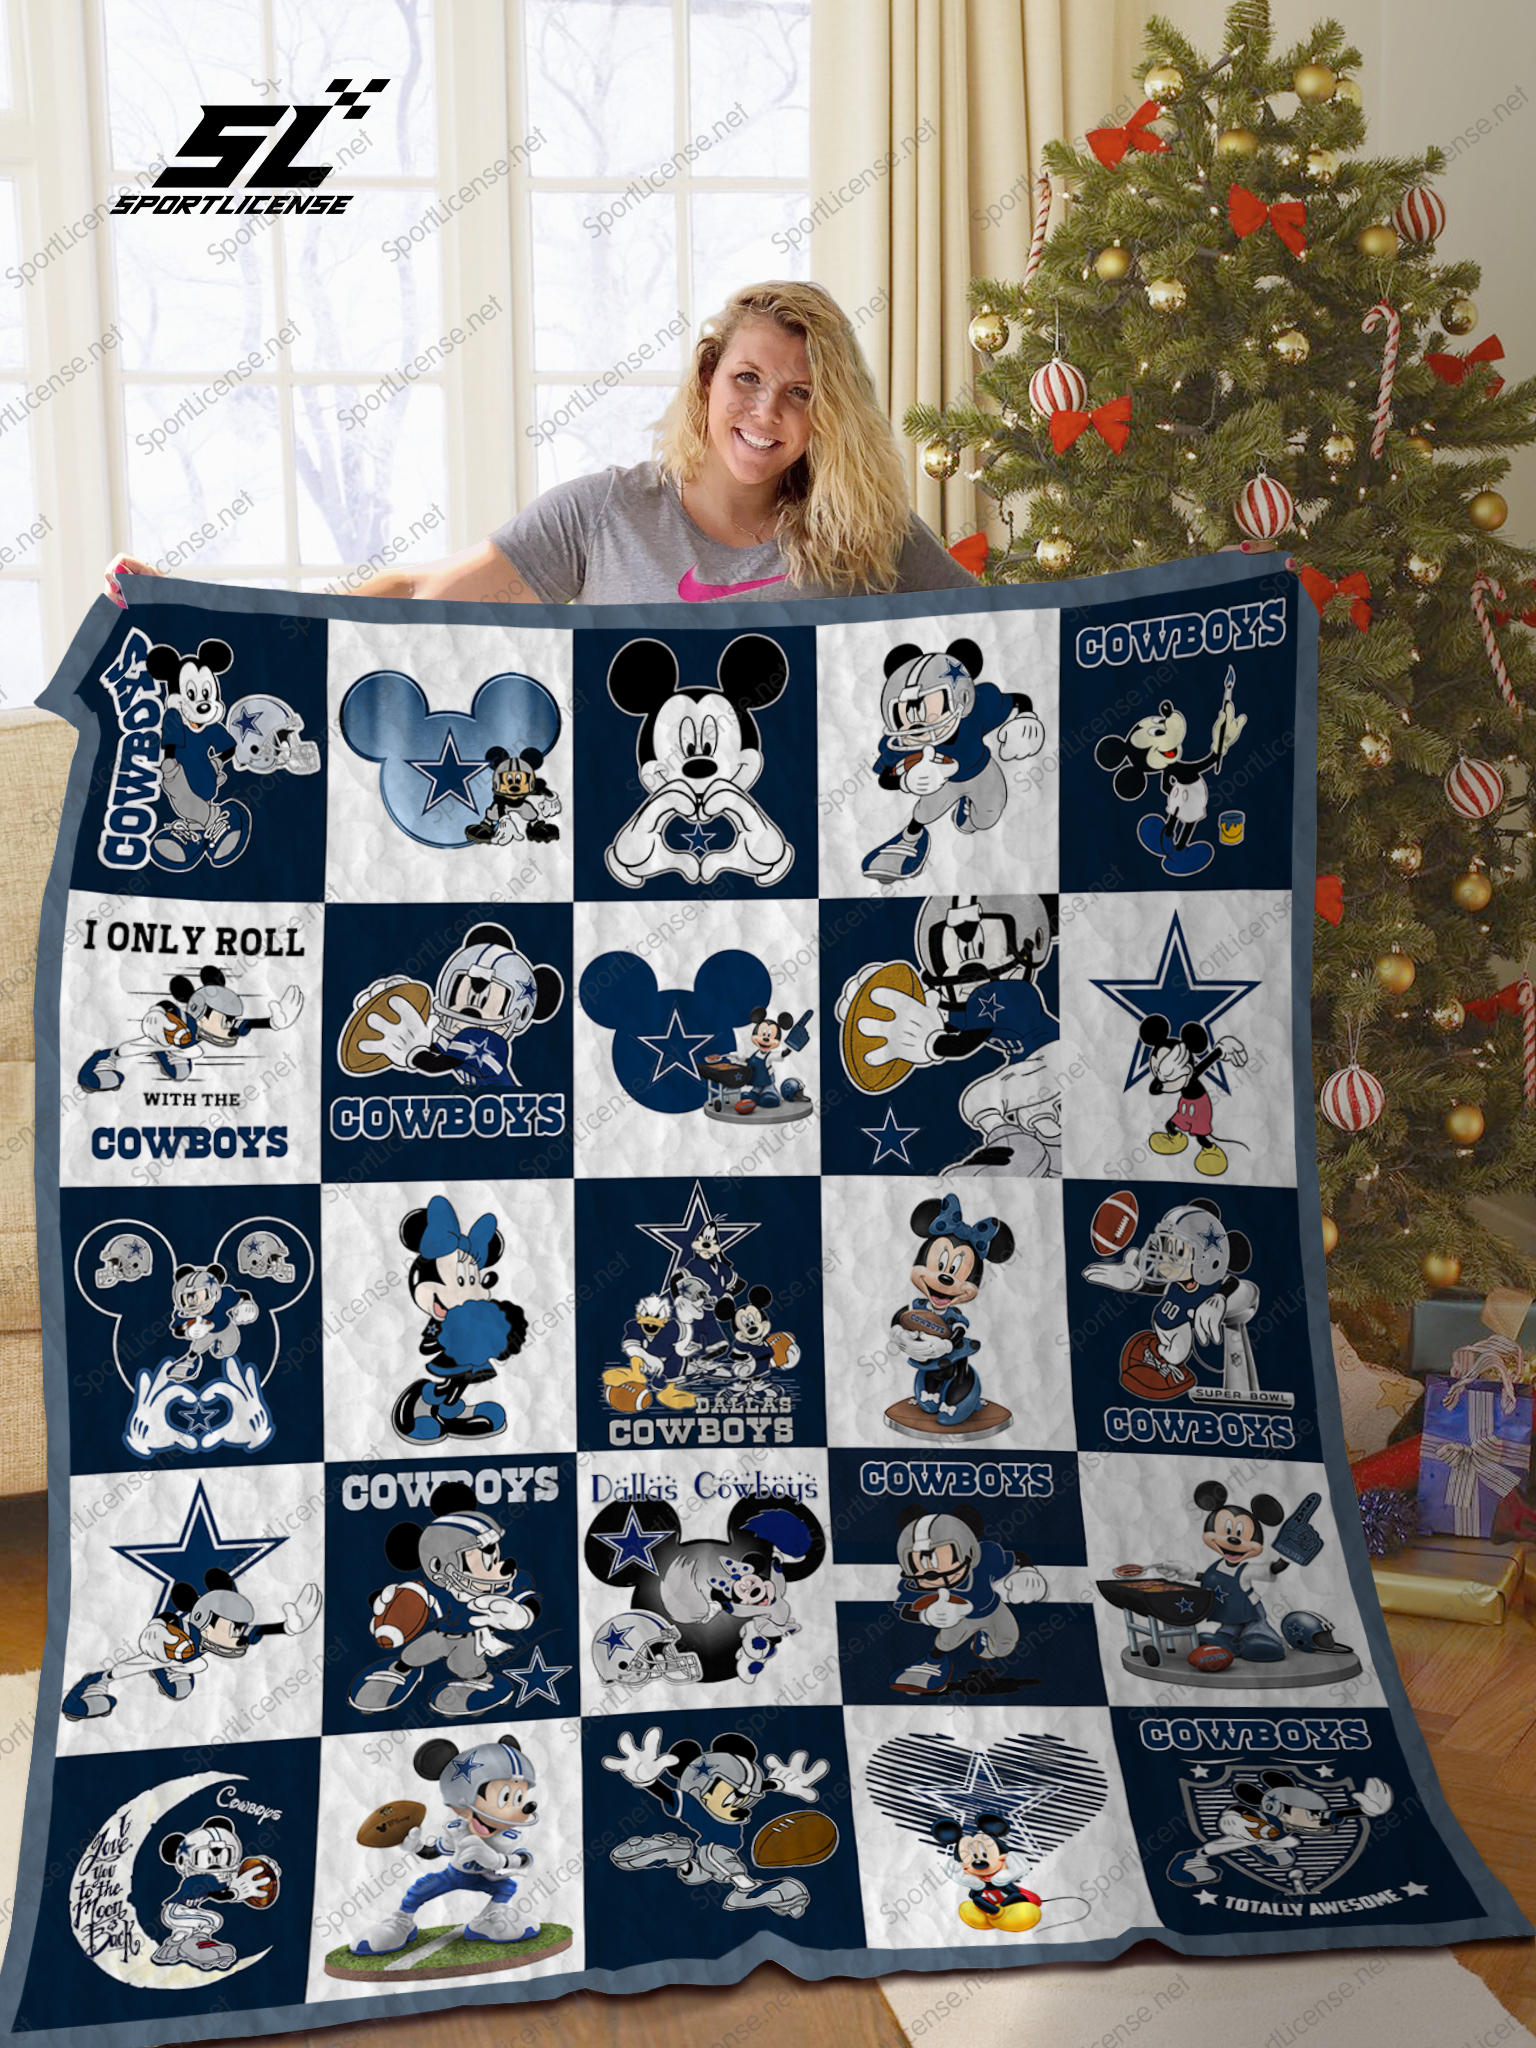 Mickey mouse dallas cowboys nfl quilt - maria